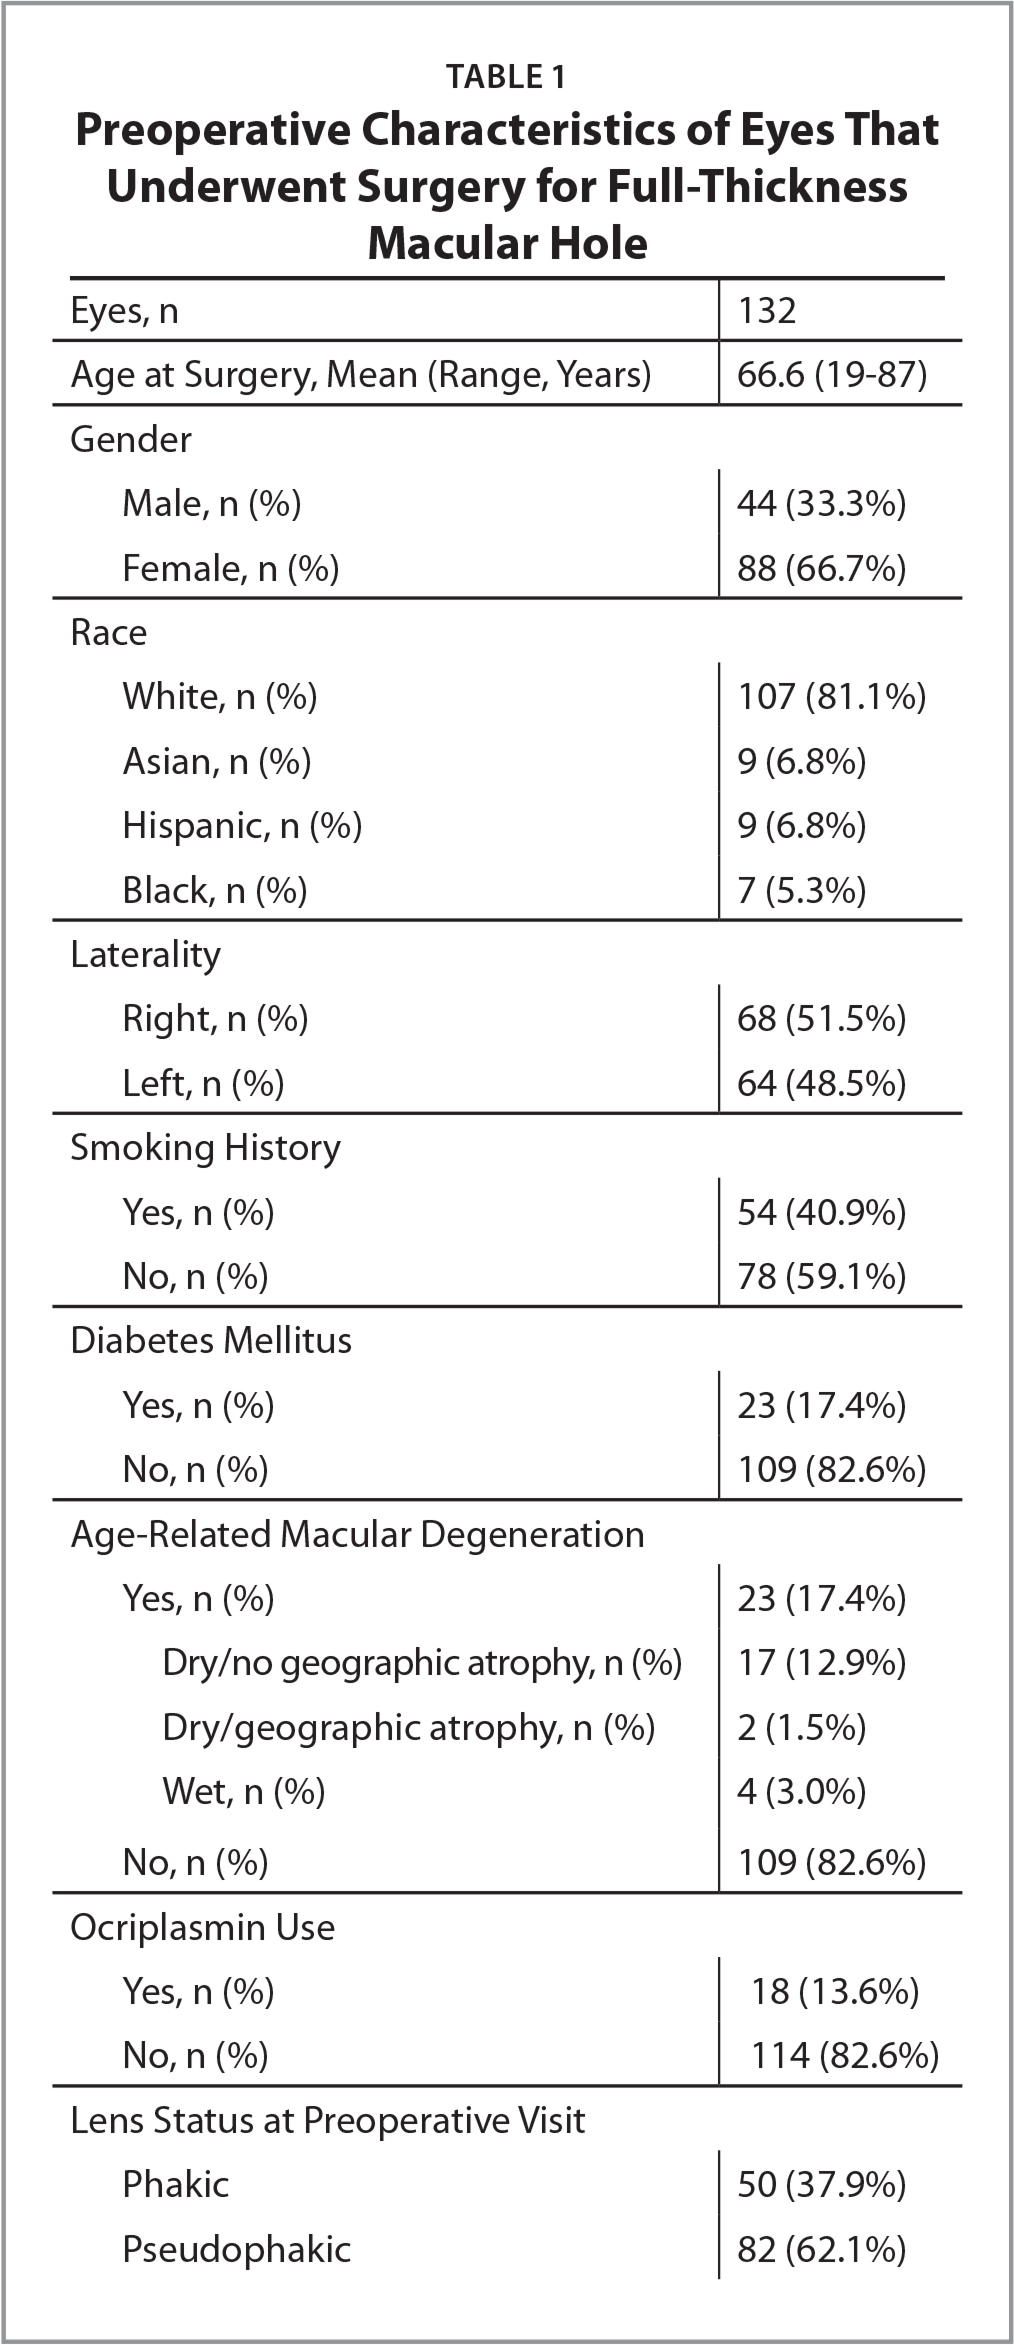 Preoperative Characteristics of Eyes That Underwent Surgery for Full-Thickness Macular Hole